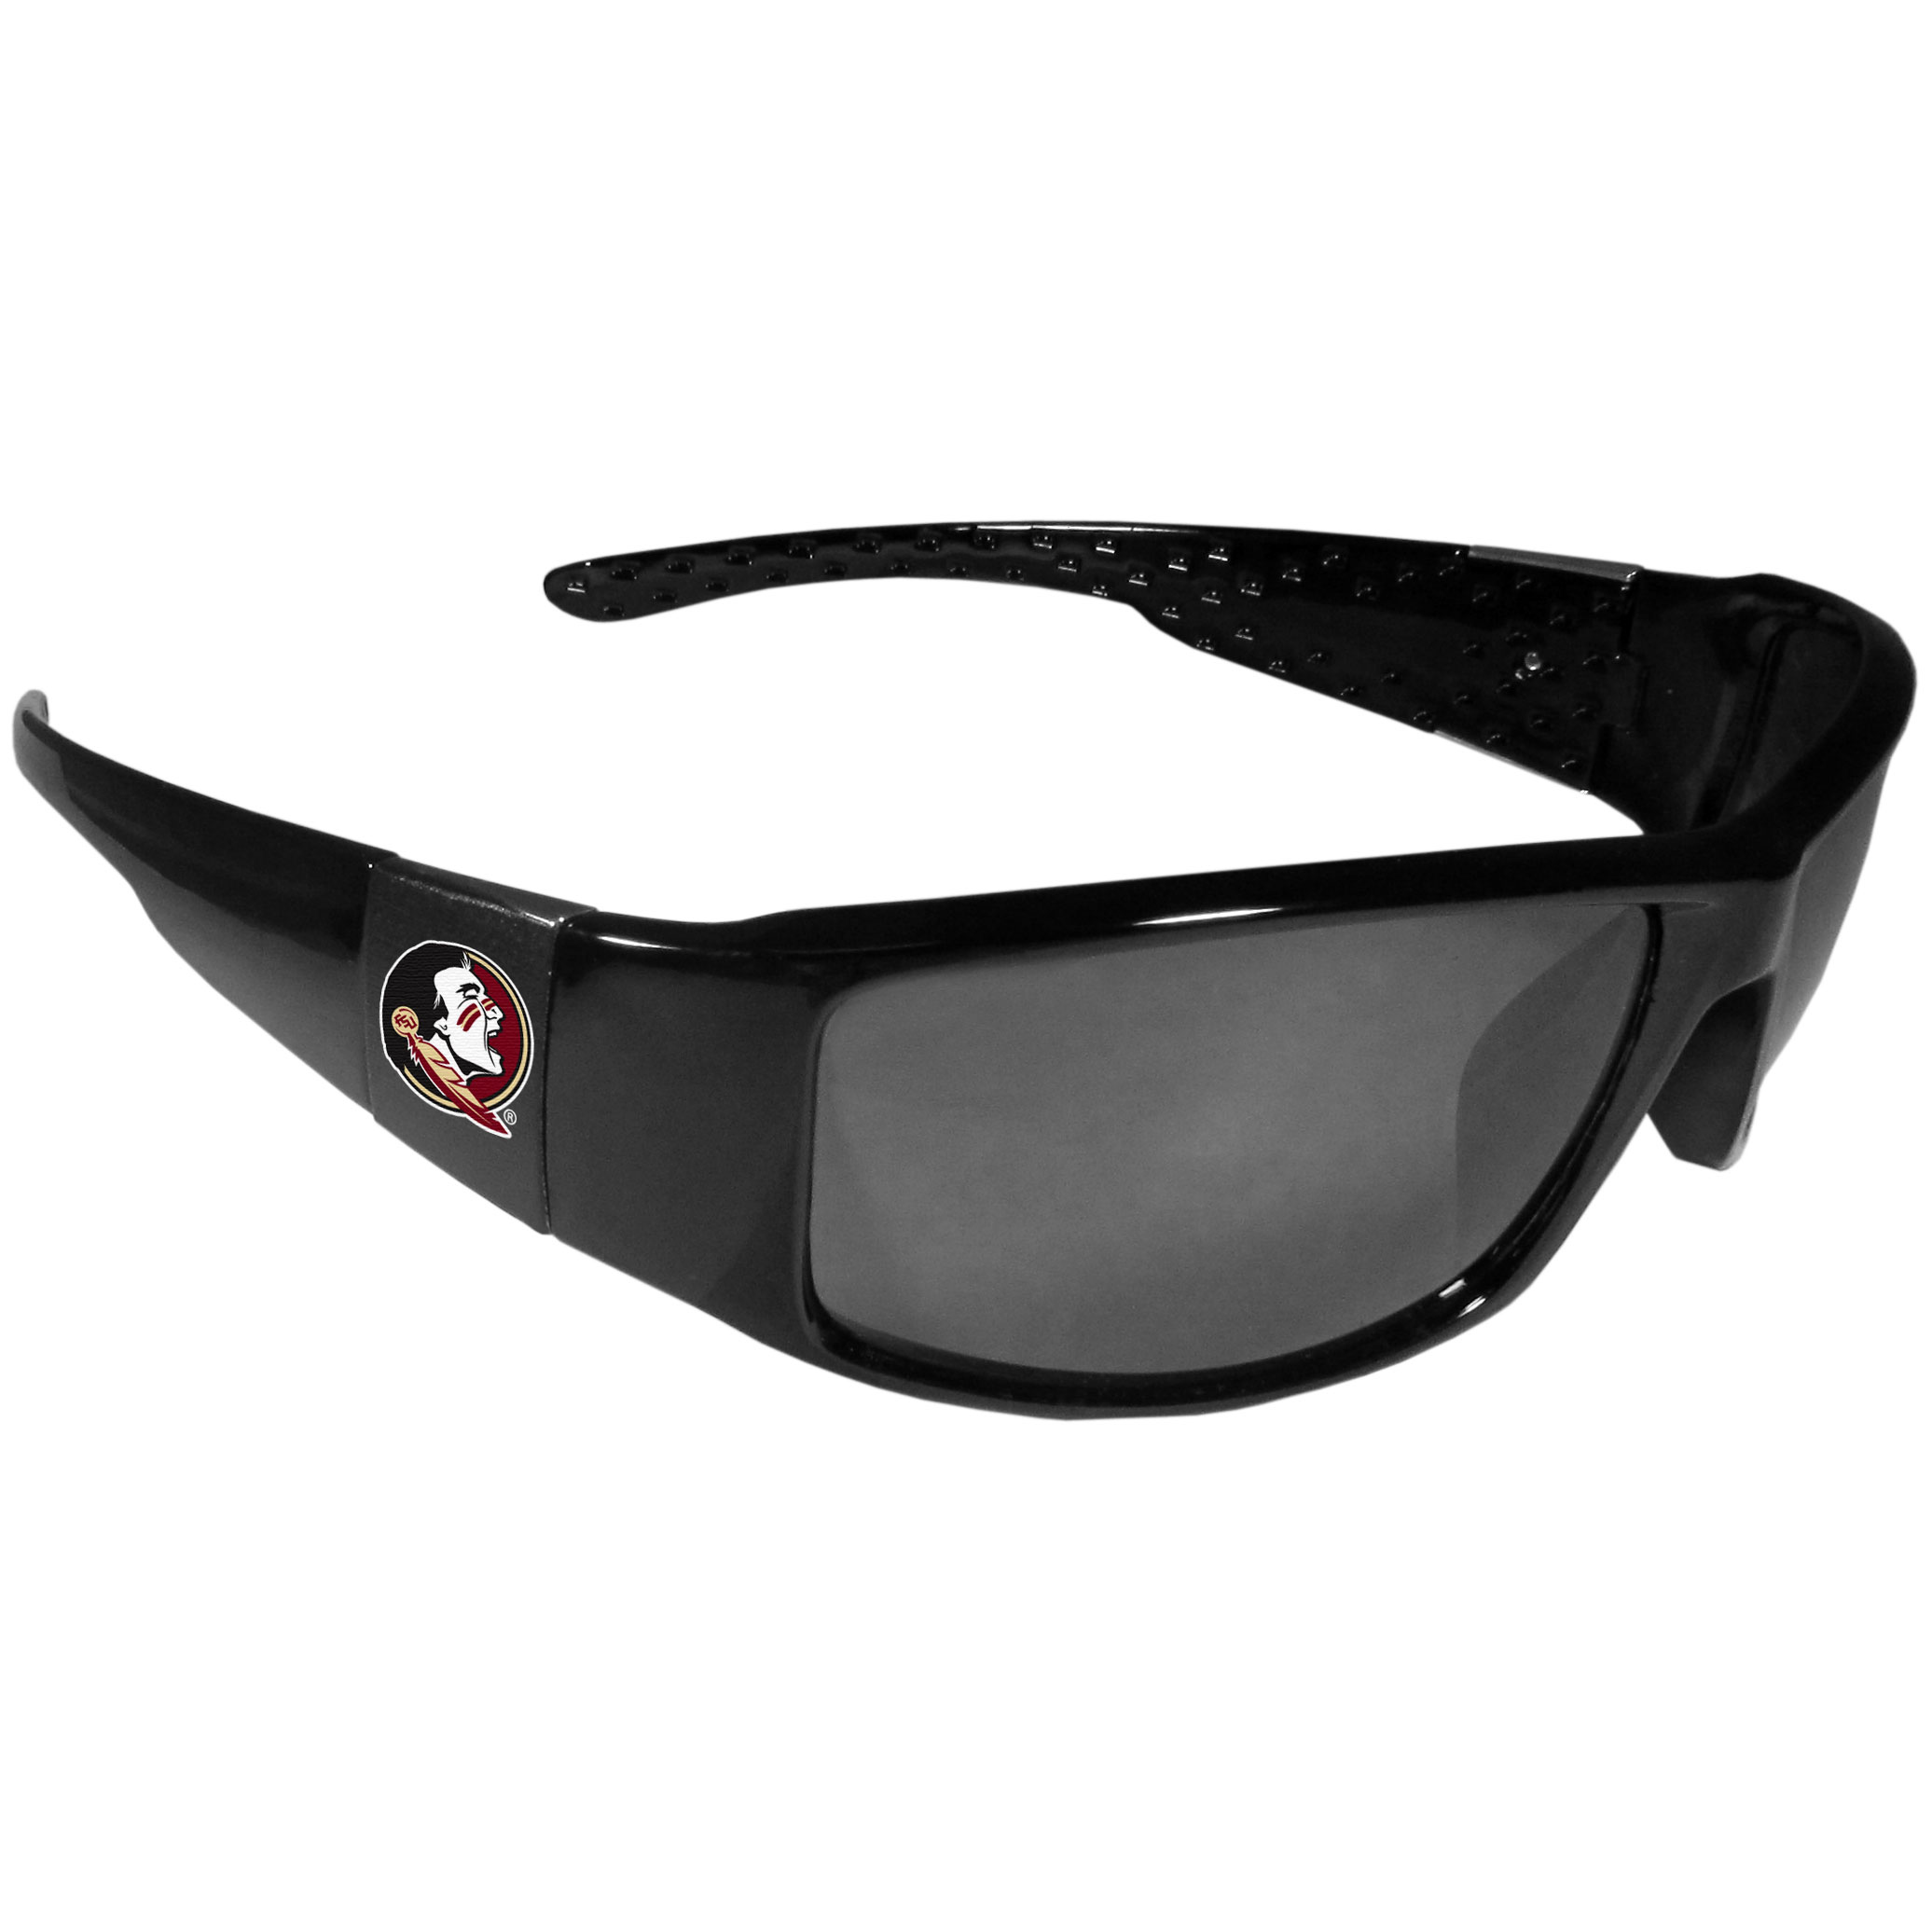 Florida St. Seminoles Black Wrap Sunglasses - These designer inspired frames have a sleek look in all black with  Florida St. Seminoles shields on each arm with a printed logo. The shades are perfect for any outdoor activity like; golfing, driving, hiking, fishing or cheering on the team at a tailgating event or at a home game day BBQ with a lens rating of 100% UVA/UVB for maximum UV protection. The high-quality frames are as durable as they are fashionable and with their classic look they are the perfect fan accessory that can be worn everyday for every occasion.